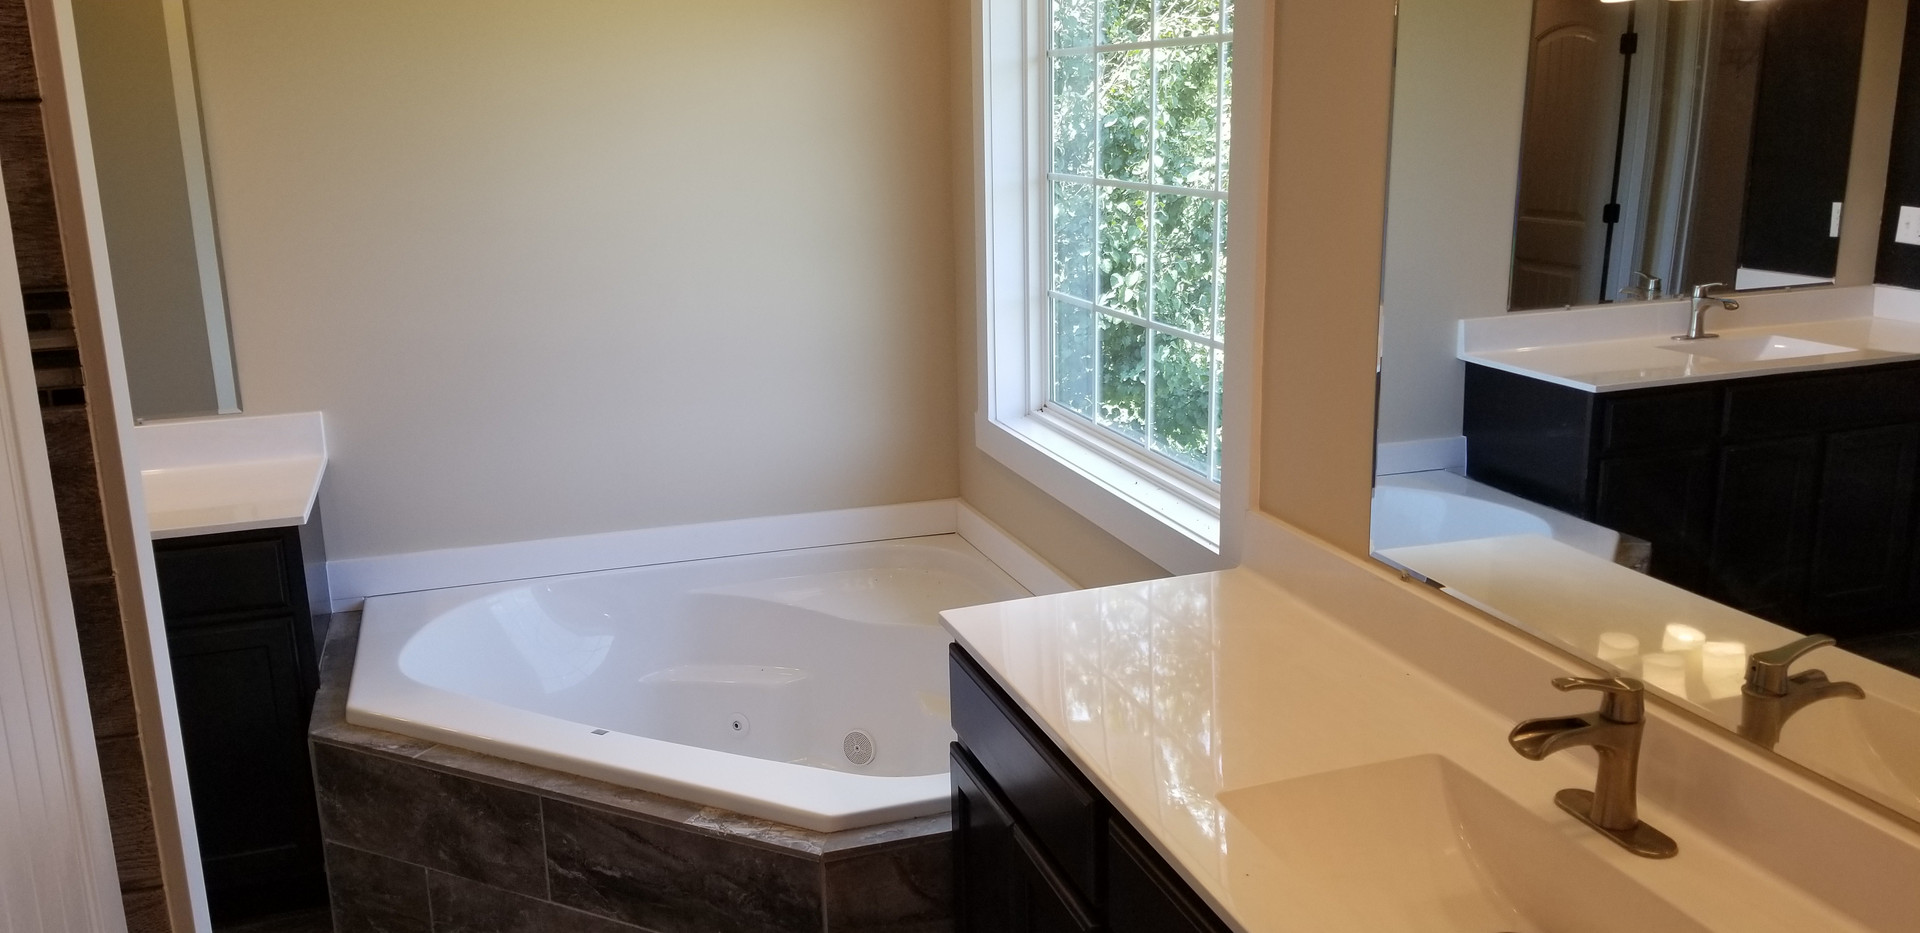 Master Bathroom A.jpg